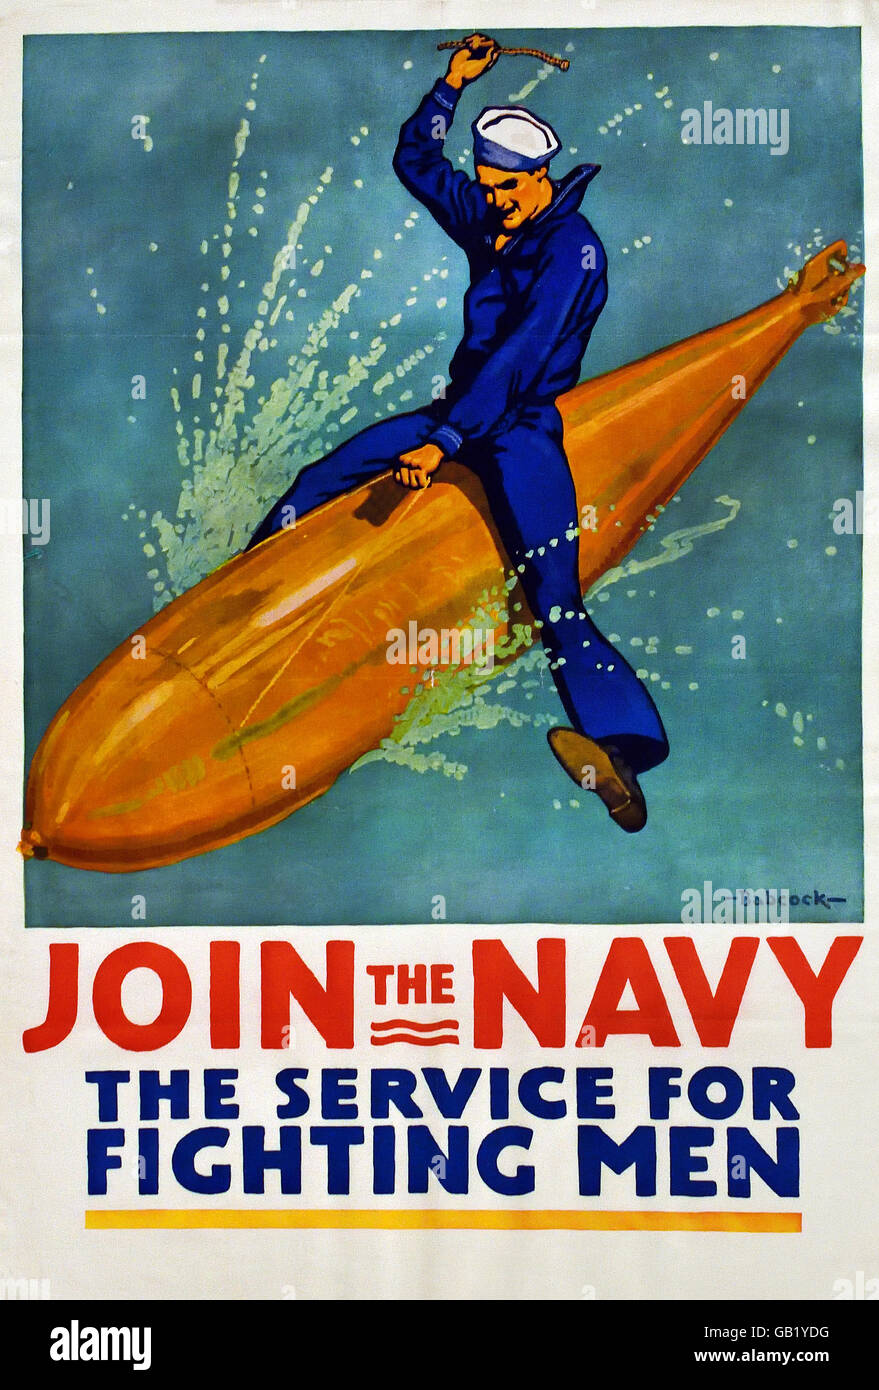 Join the Navy - The Service for Fighting - US Army World War one 1914 -1918 United states of America USA poster - Stock Image